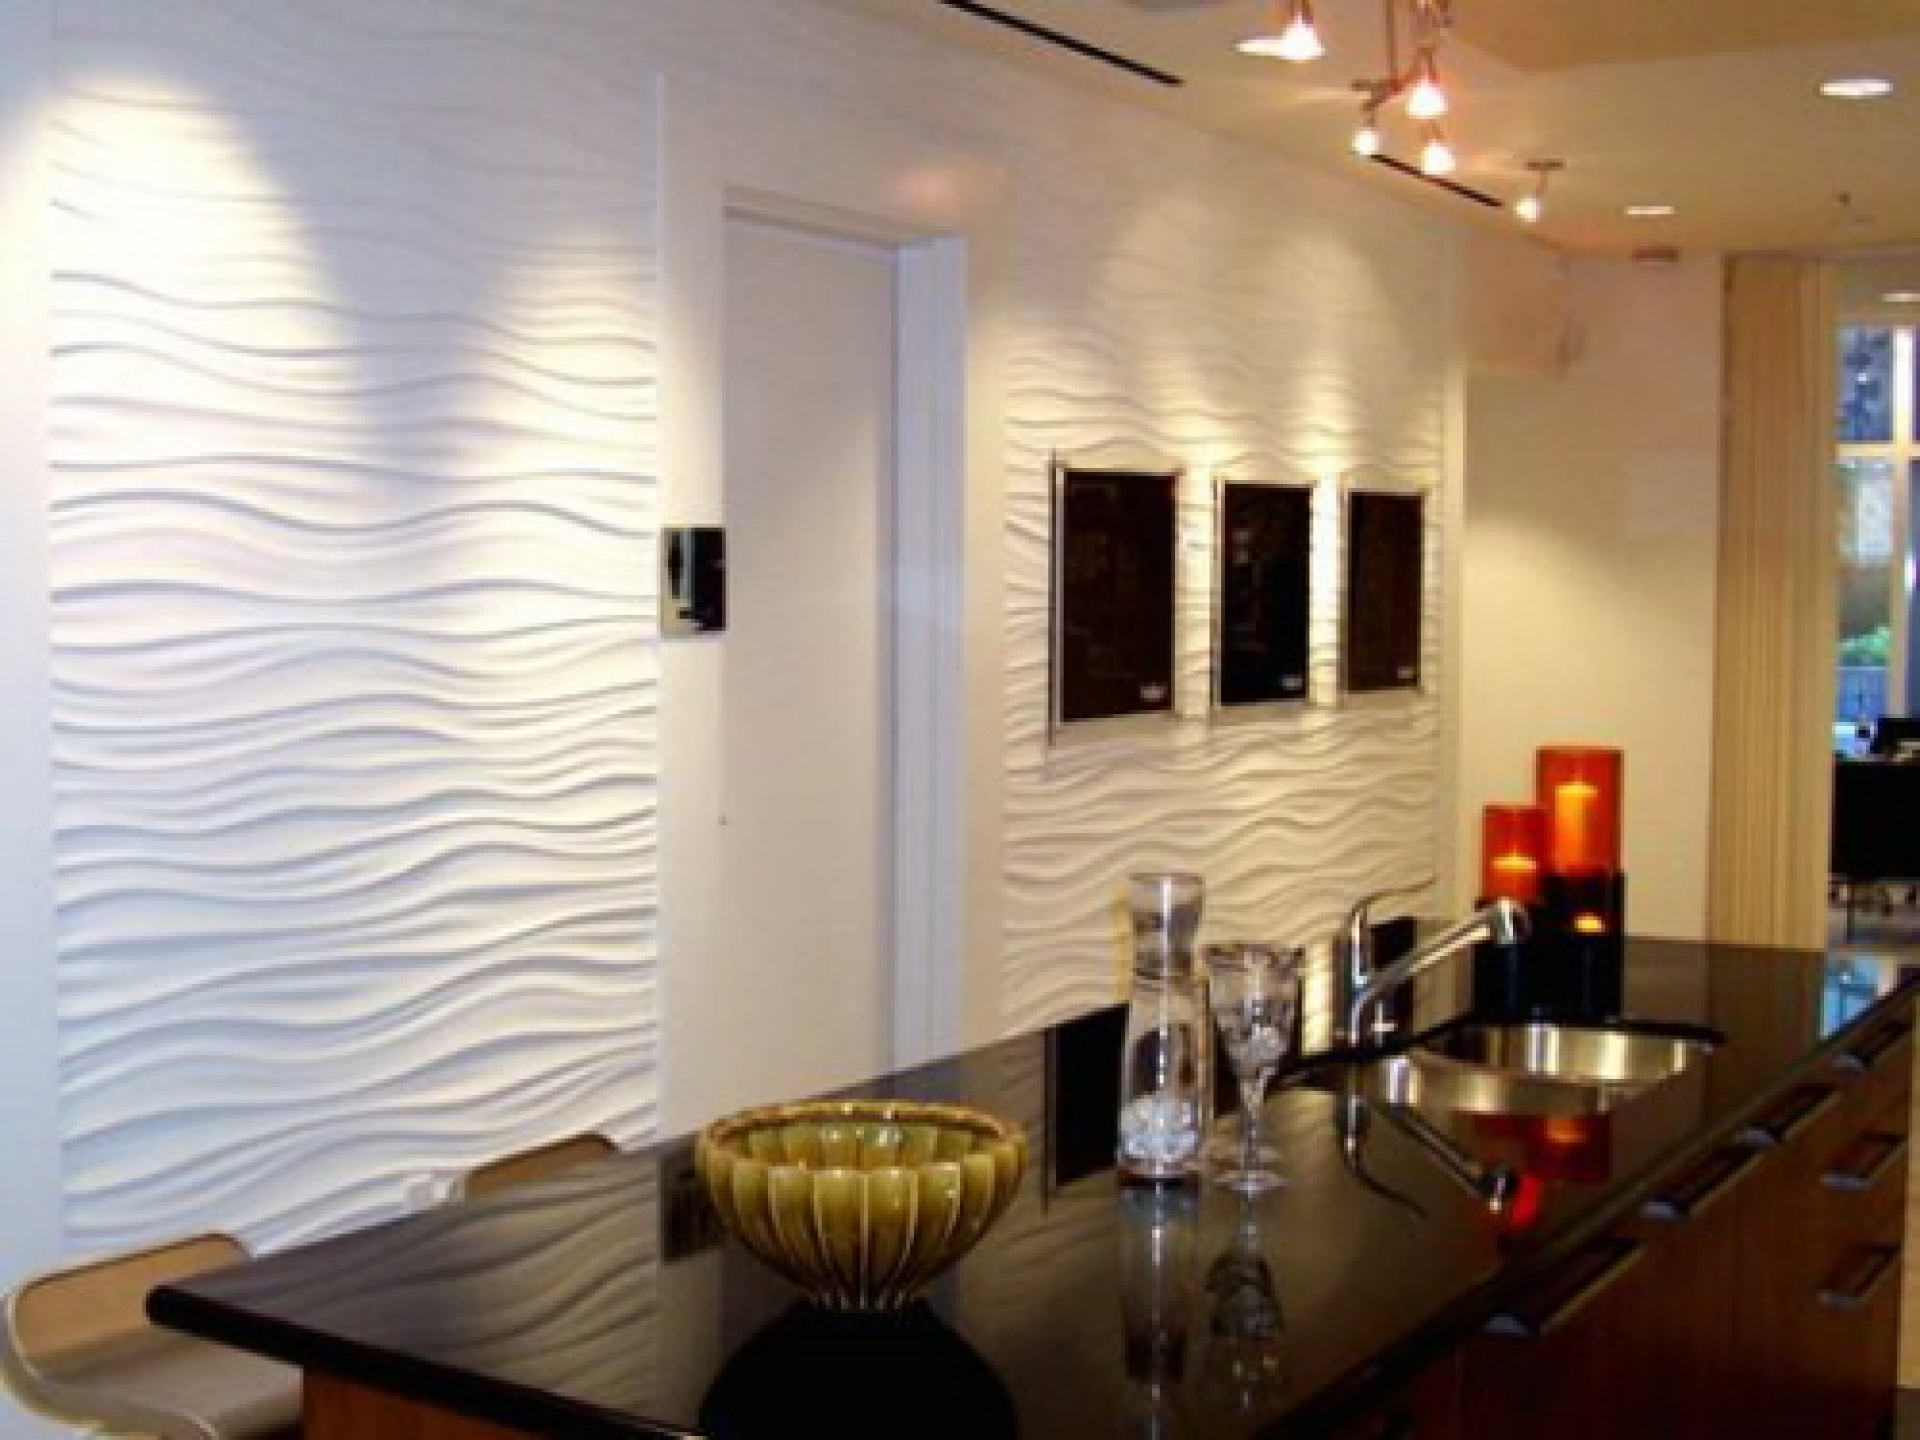 Paneling ideas for walls - home deco plans.